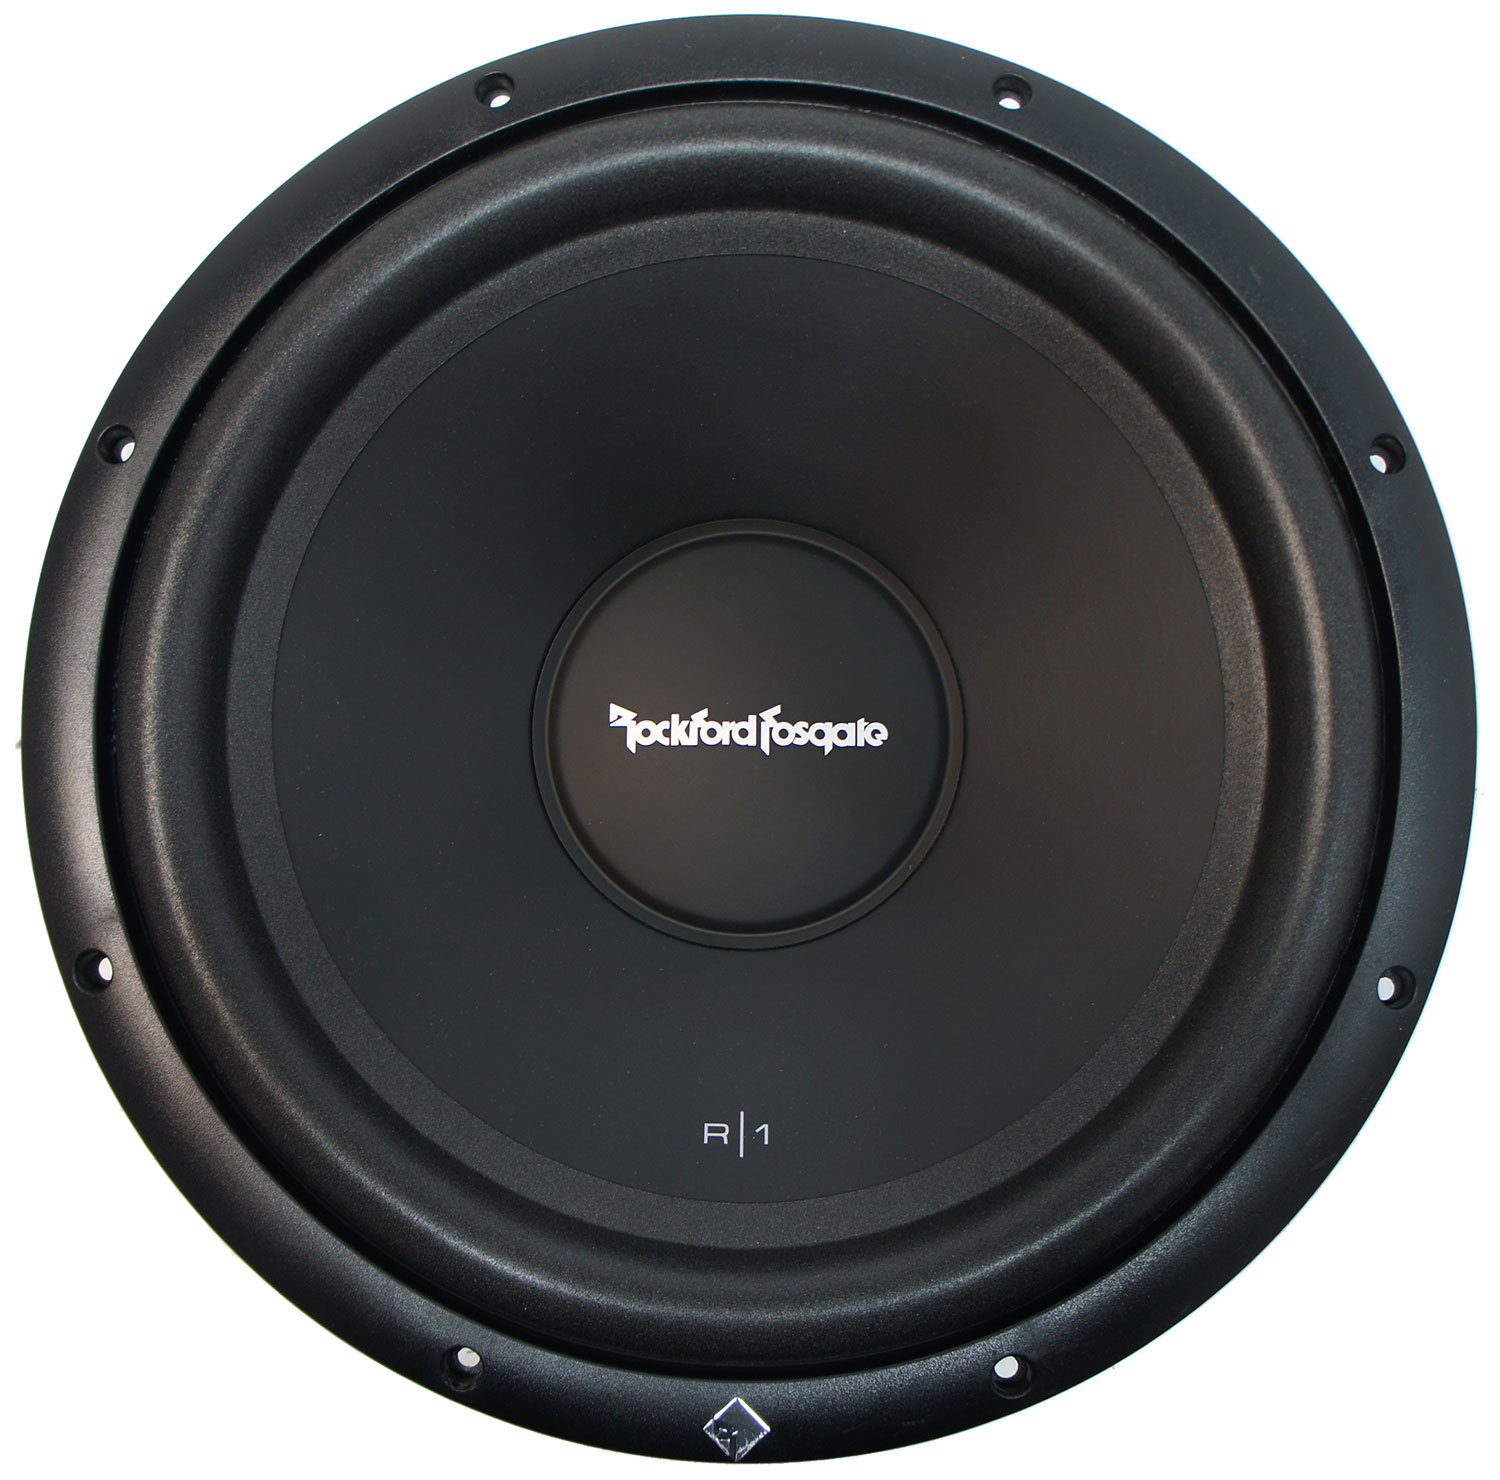 """singles in new rockford Shop lowest price on: rockford fosgate t1s-1x12 - enclosed car subwoofers 